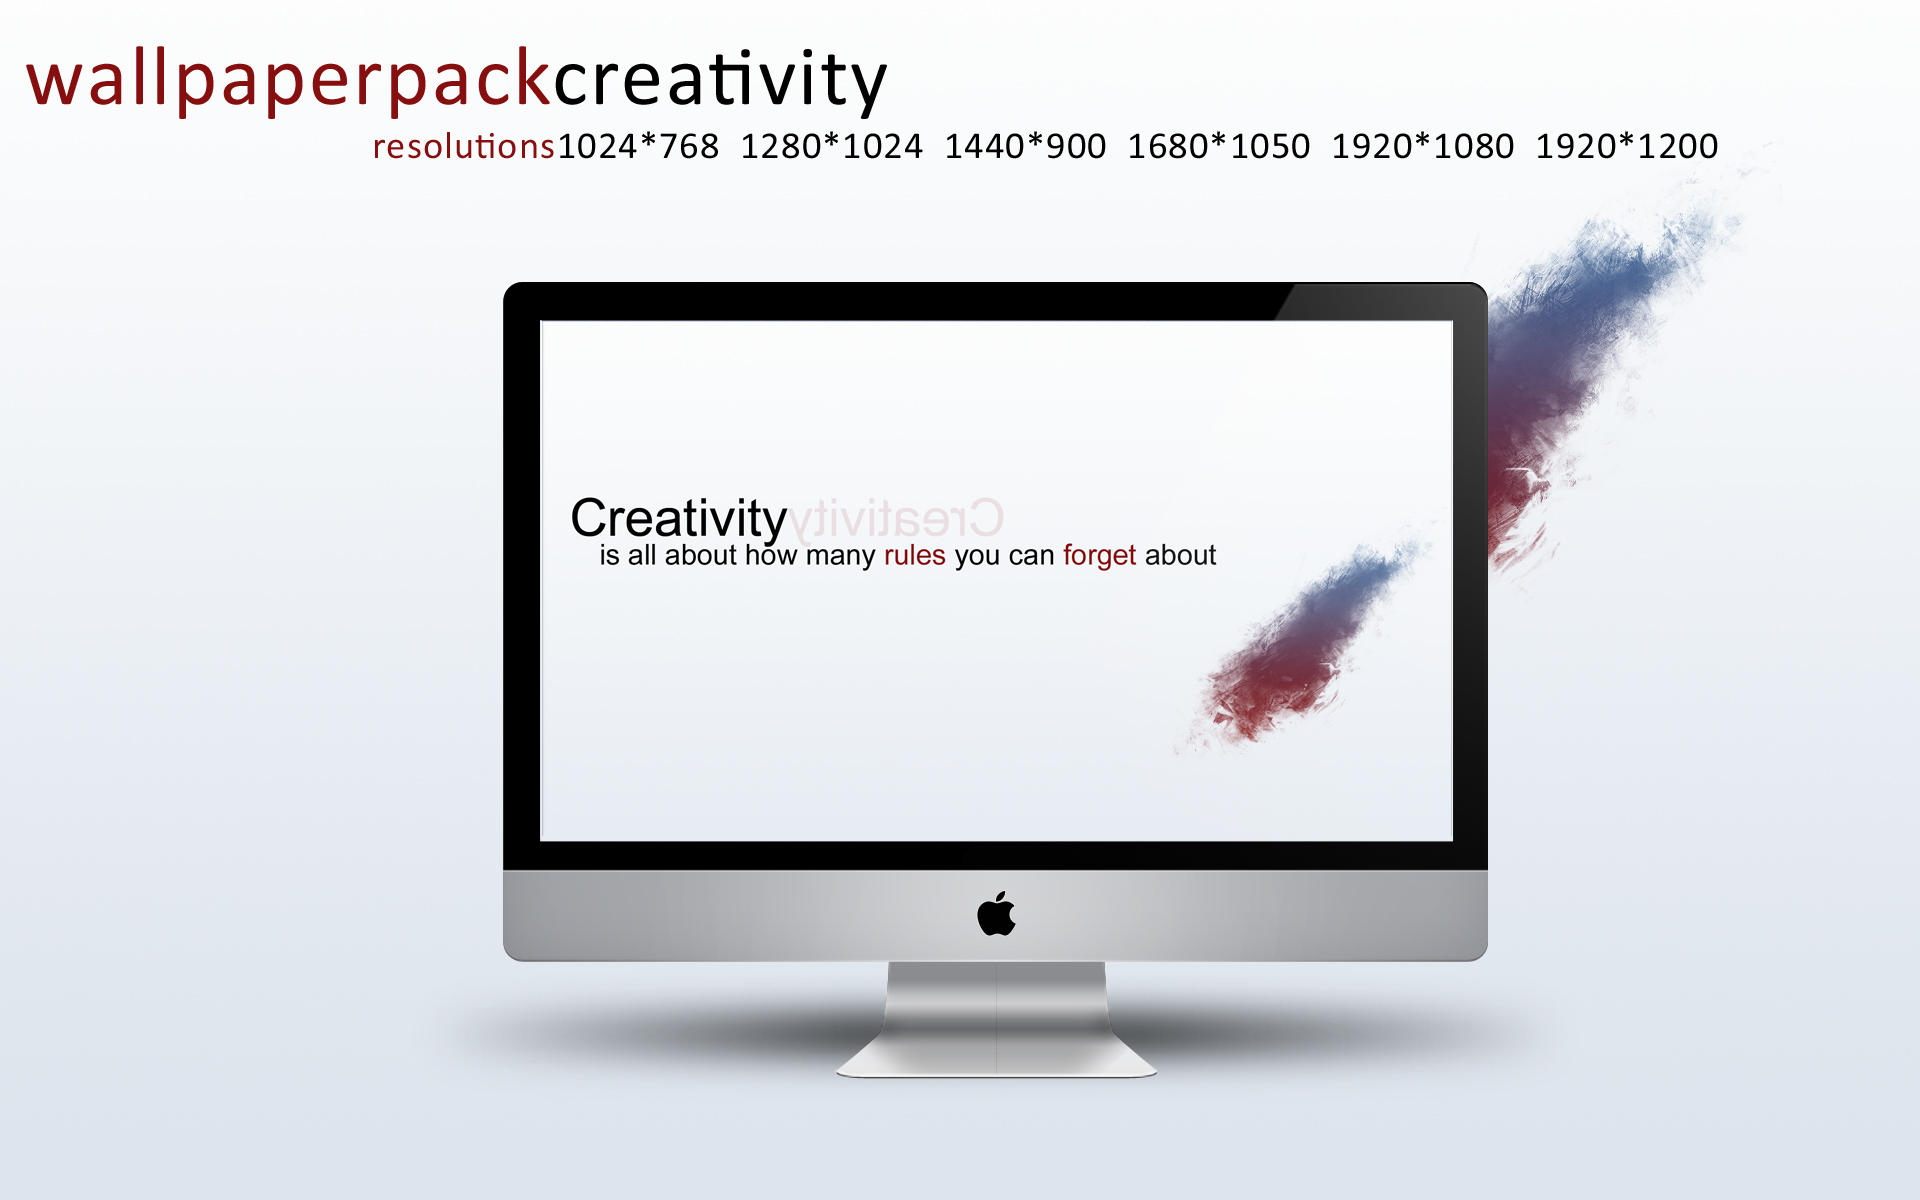 creativity wallpaper pack hd by terrencephil d3h9e03 Wallpaper pack 9